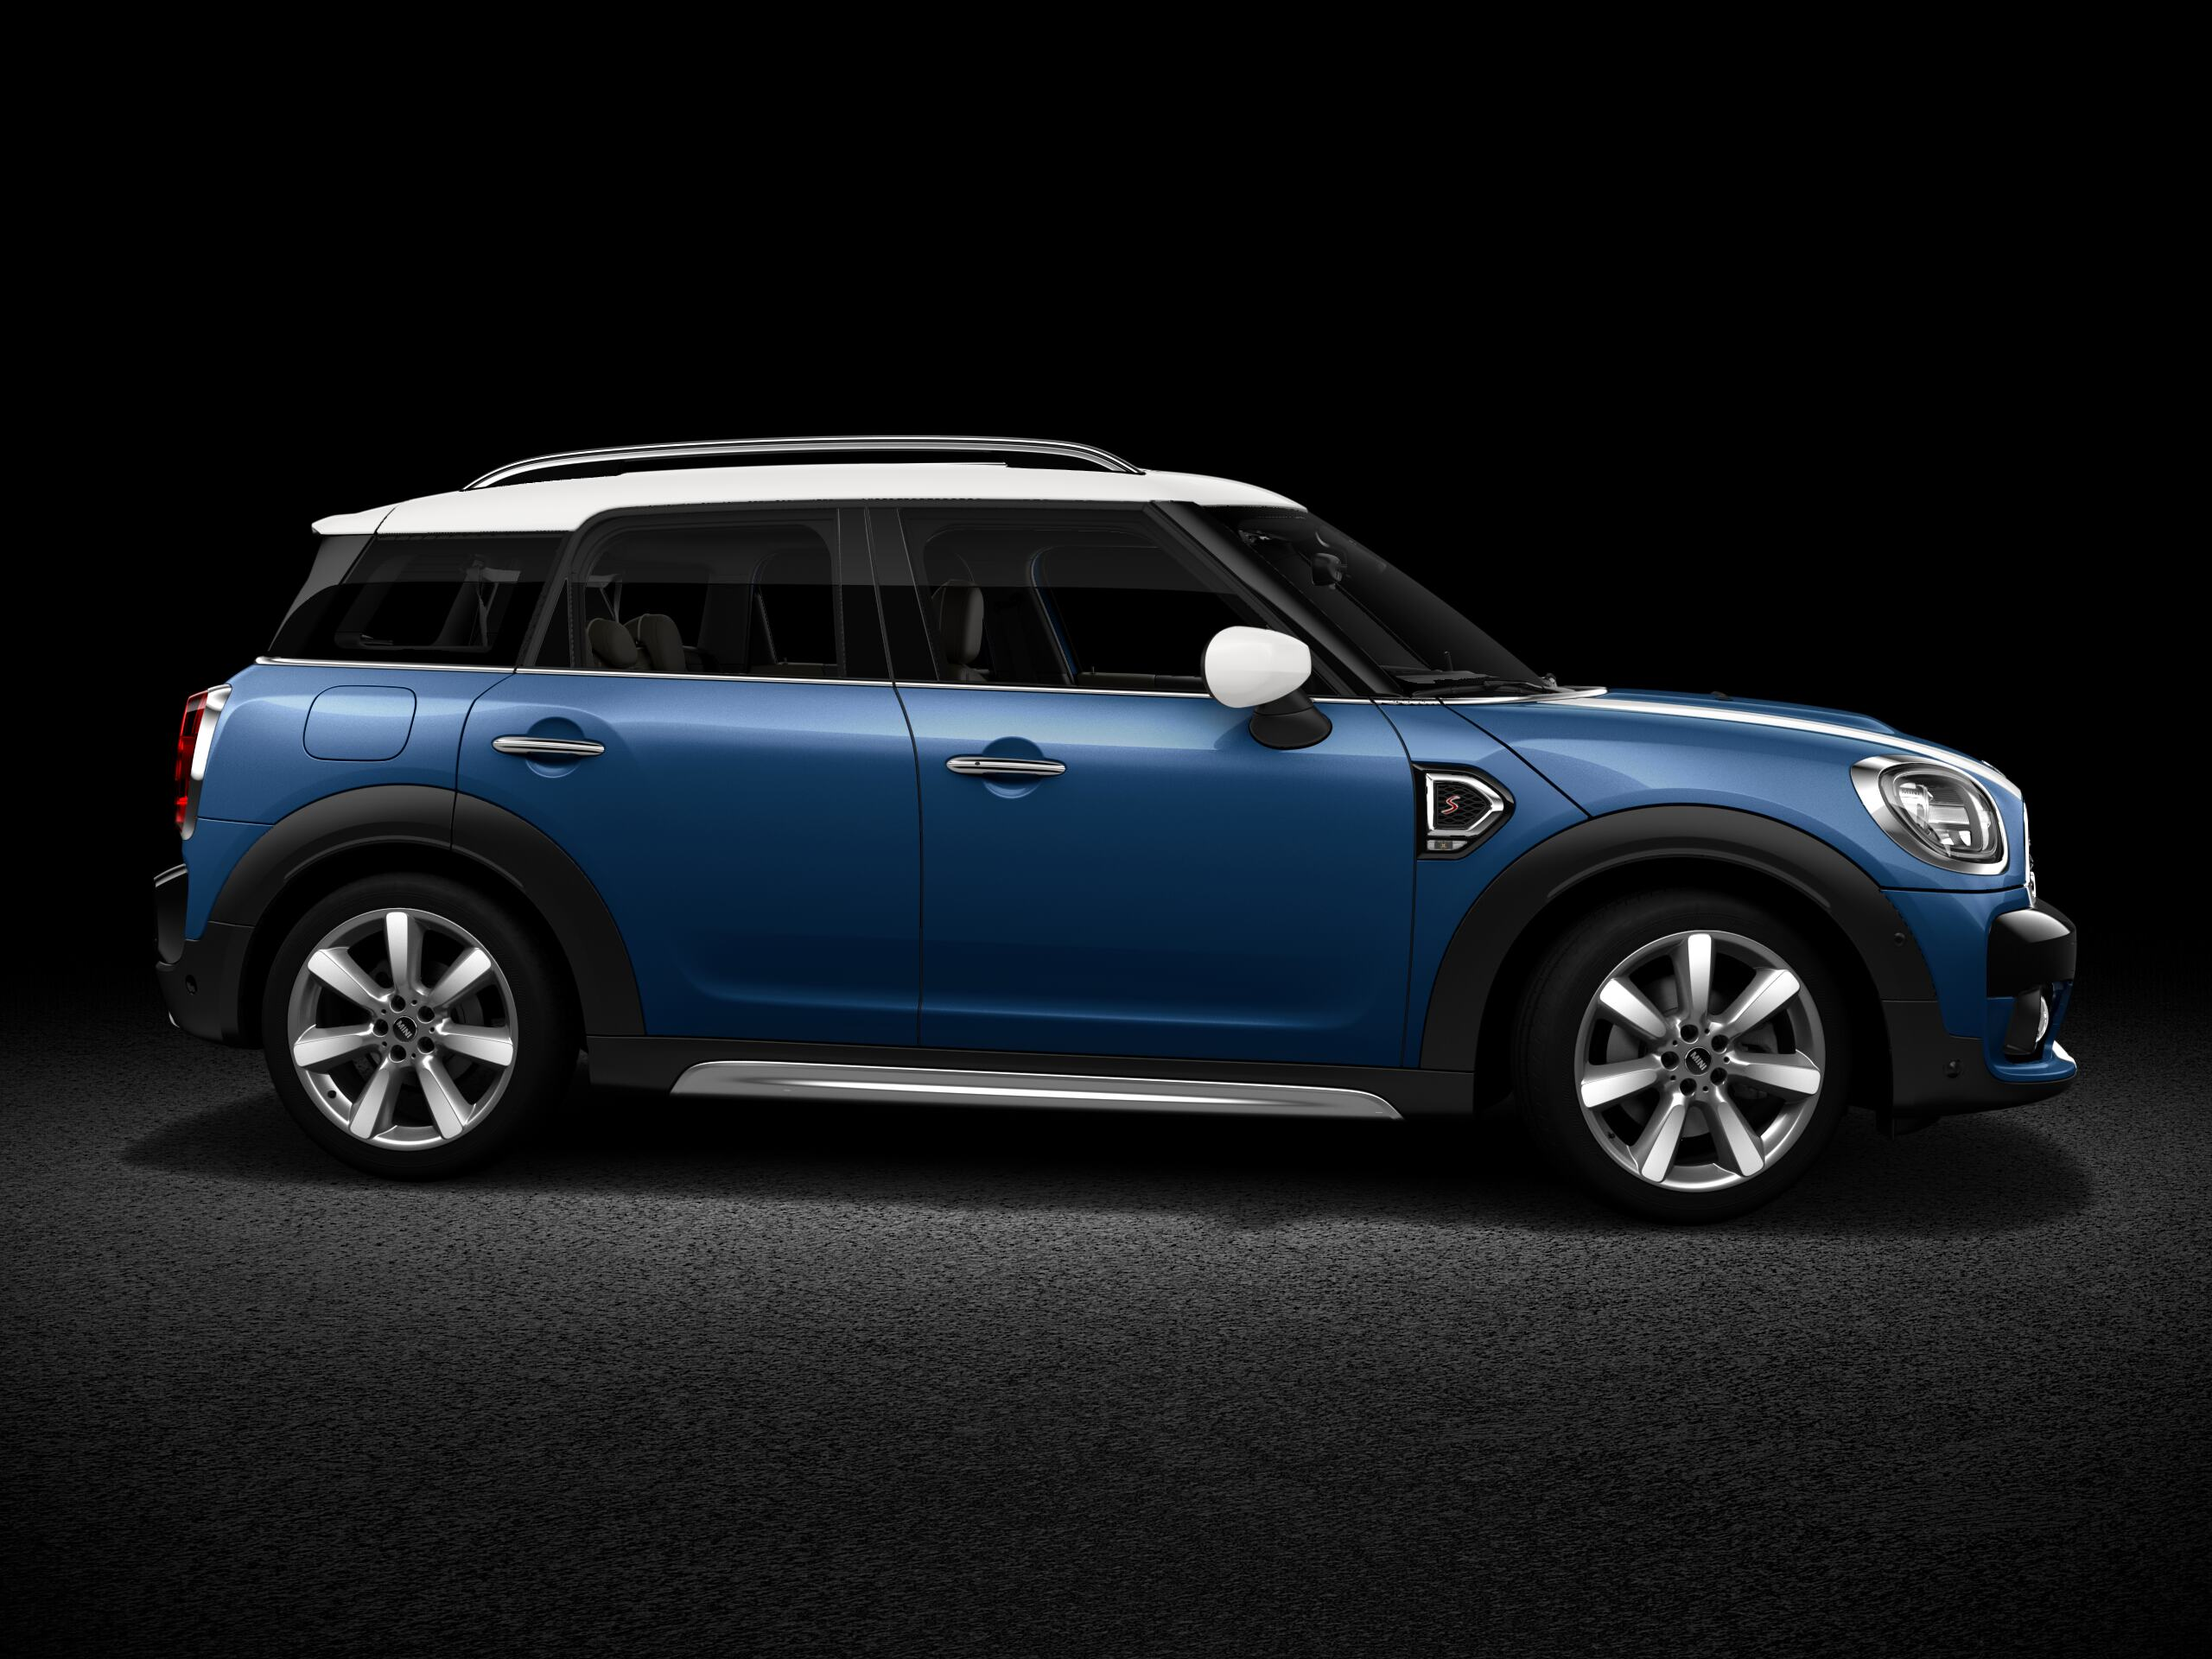 MINI COOPER S COUNTRYMAN LATERAL